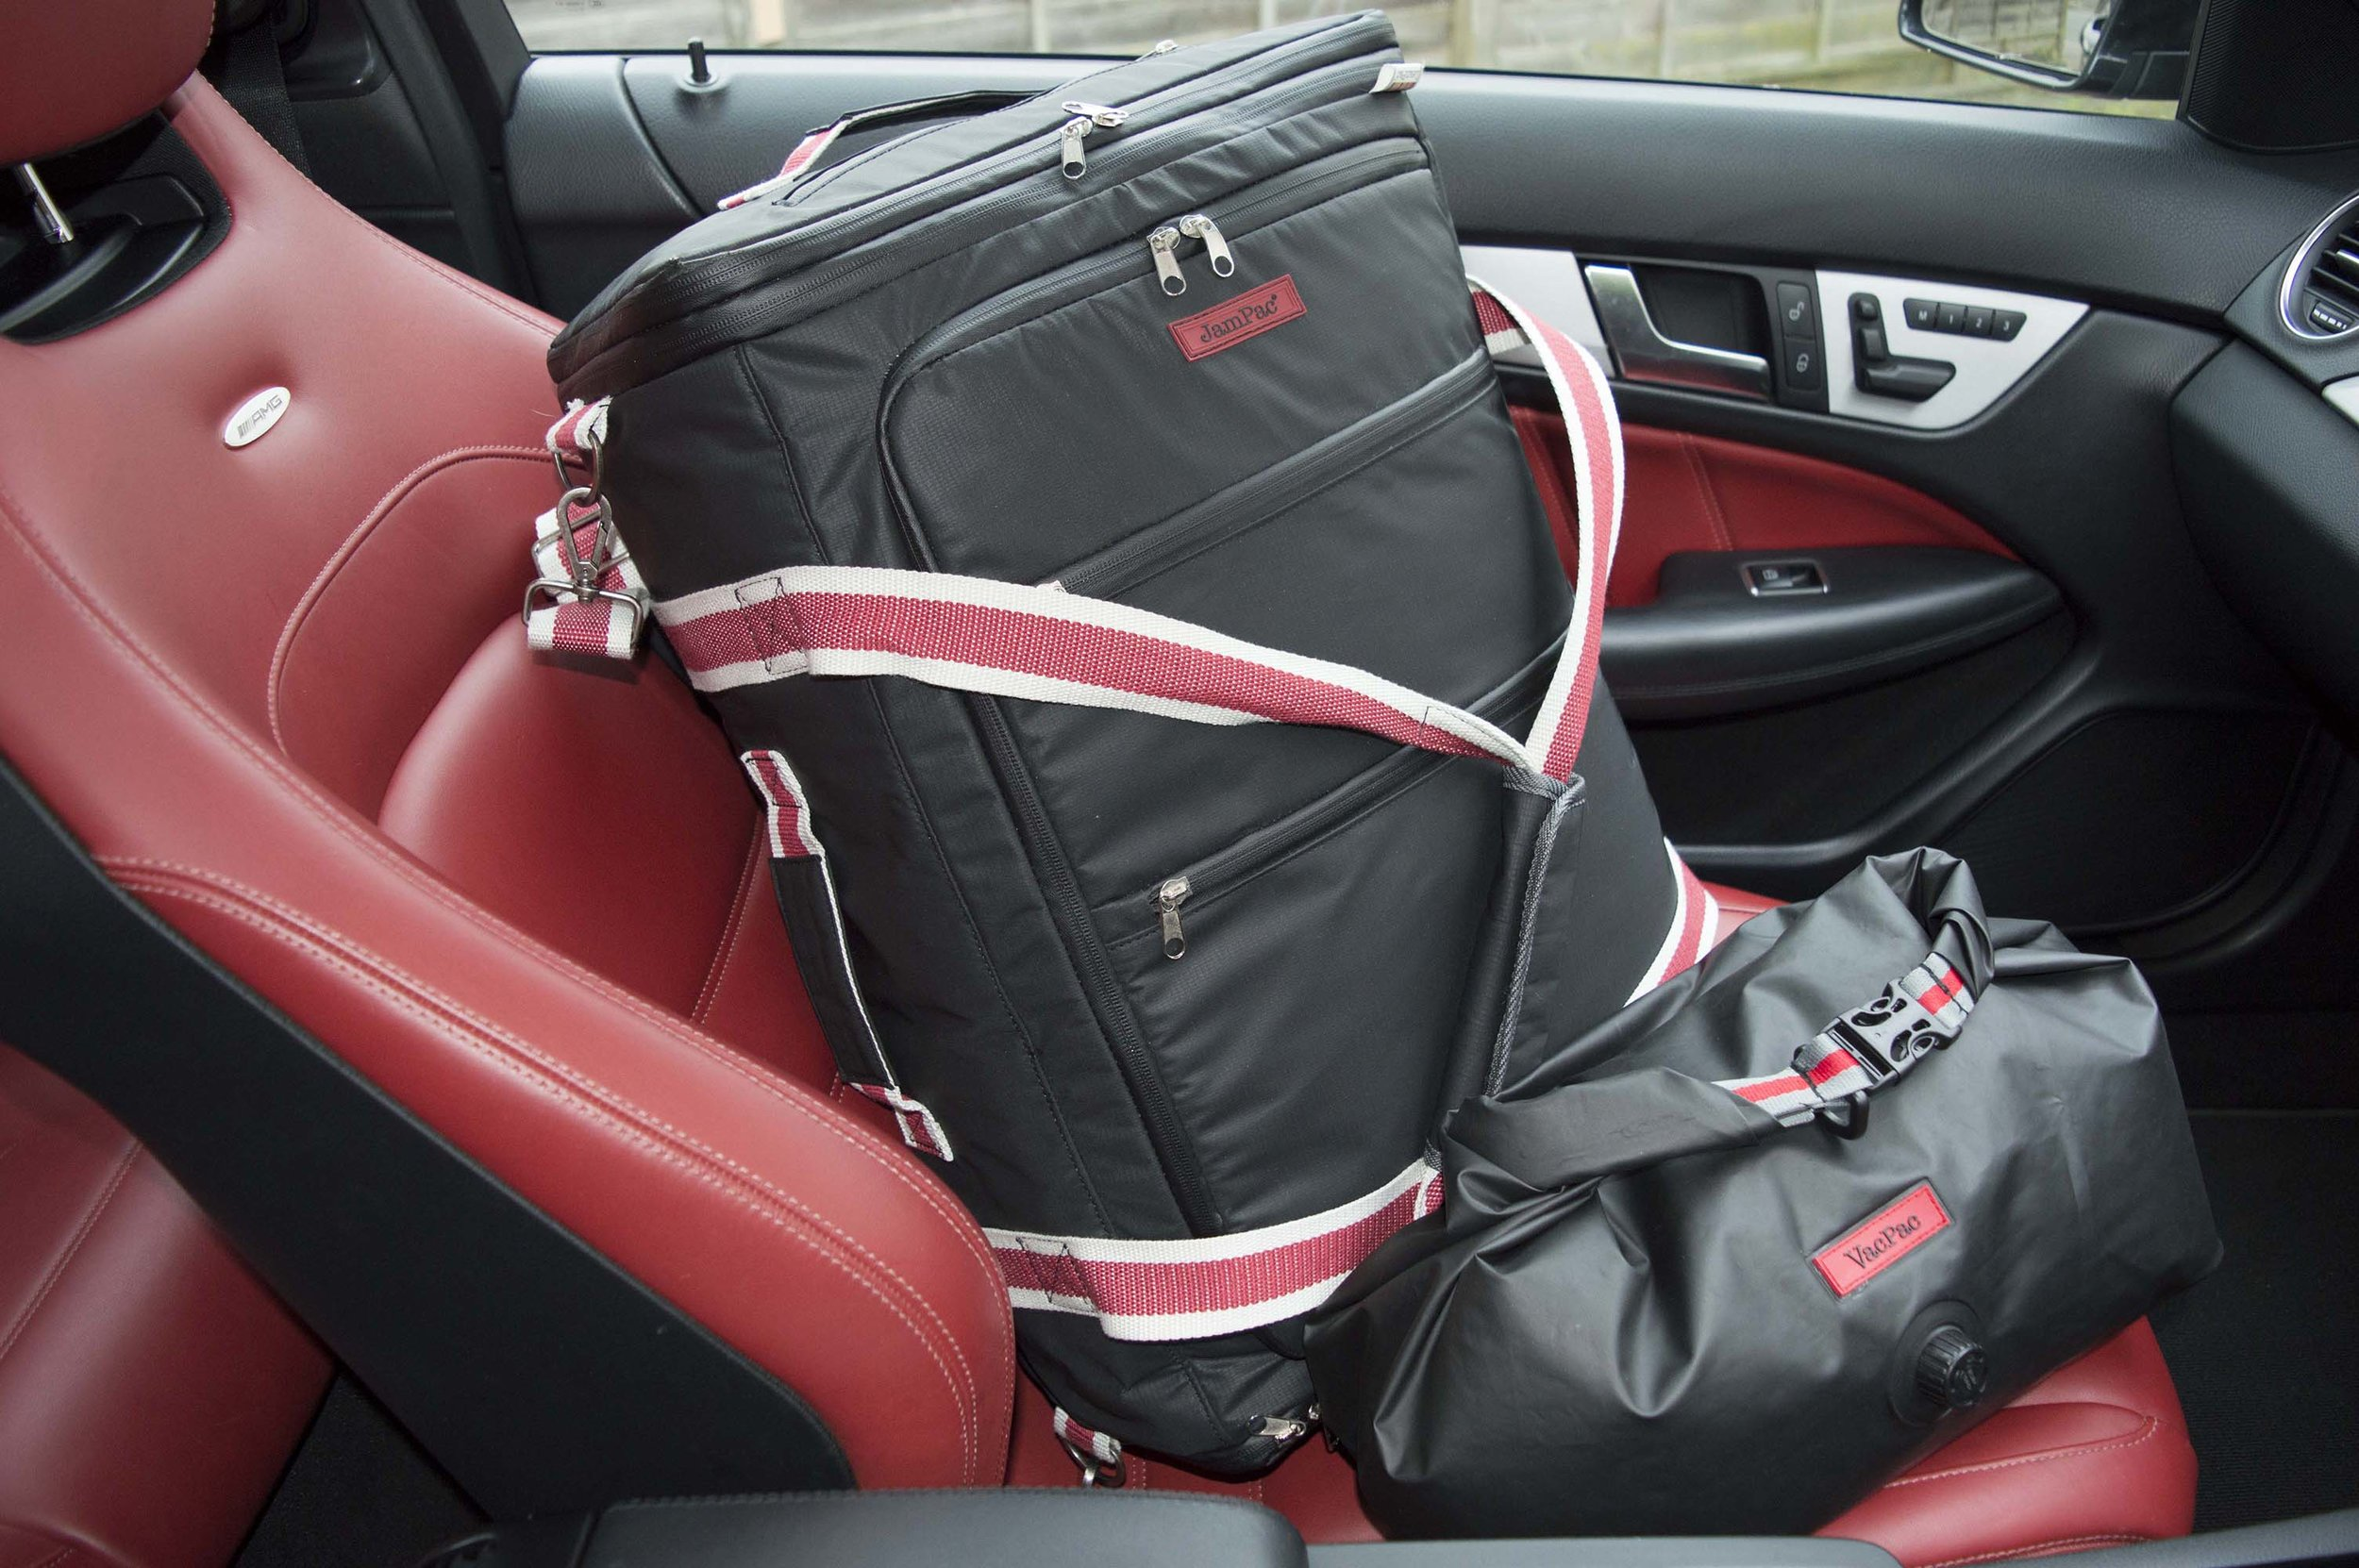 The JamPac® travel backpack & dry bag packing organiser VacPac looking good in a colour coordinated cool ride